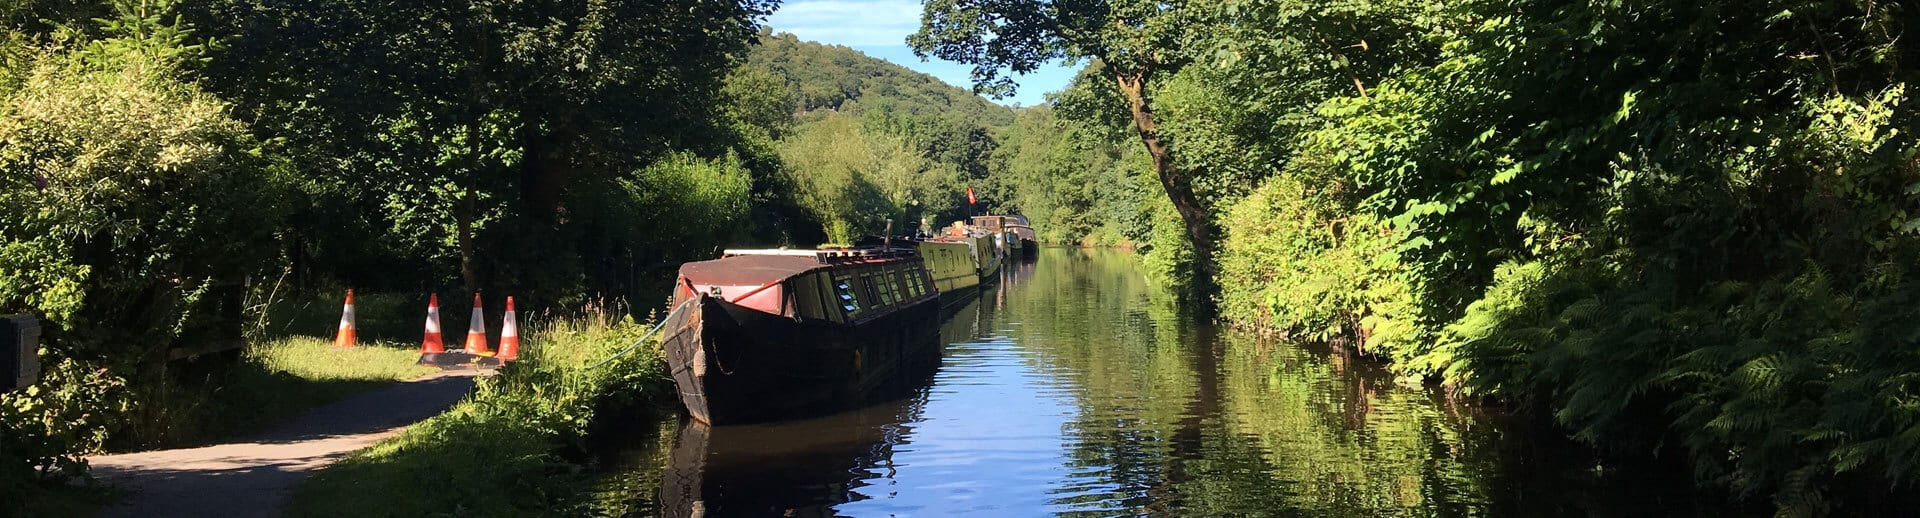 hebden bridge canal